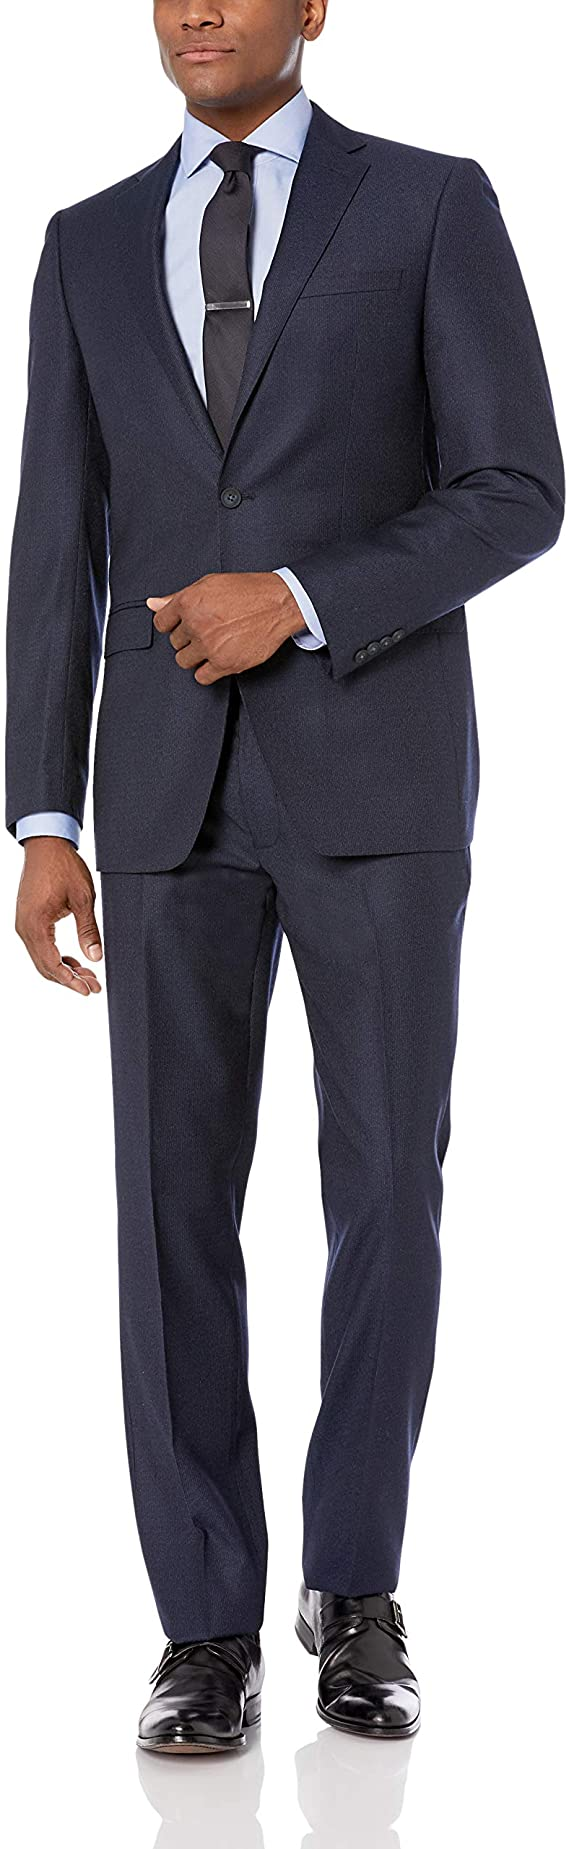 Calvin Klein Men's Stretch Slim Fit Suit